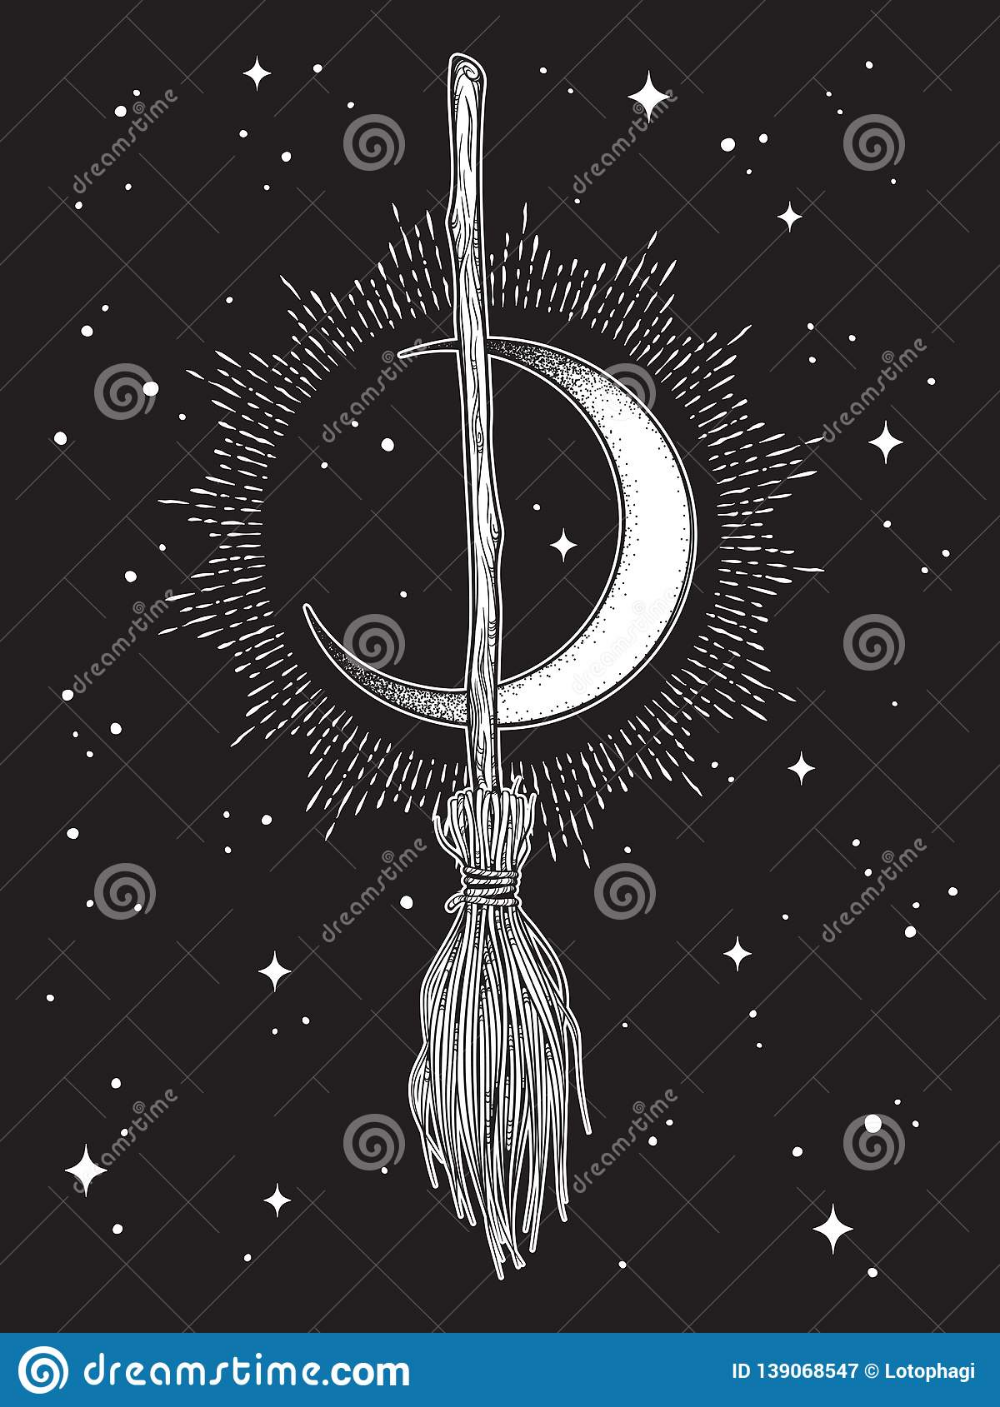 Broom Magic Vehicle Of The Witch Hand Drawn Ink Style Boho Chic Sticker, Patch, Flash Tattoo Or Print Design Vector Illustration Stock Vector - Illustration of etching, gothic: 139068547